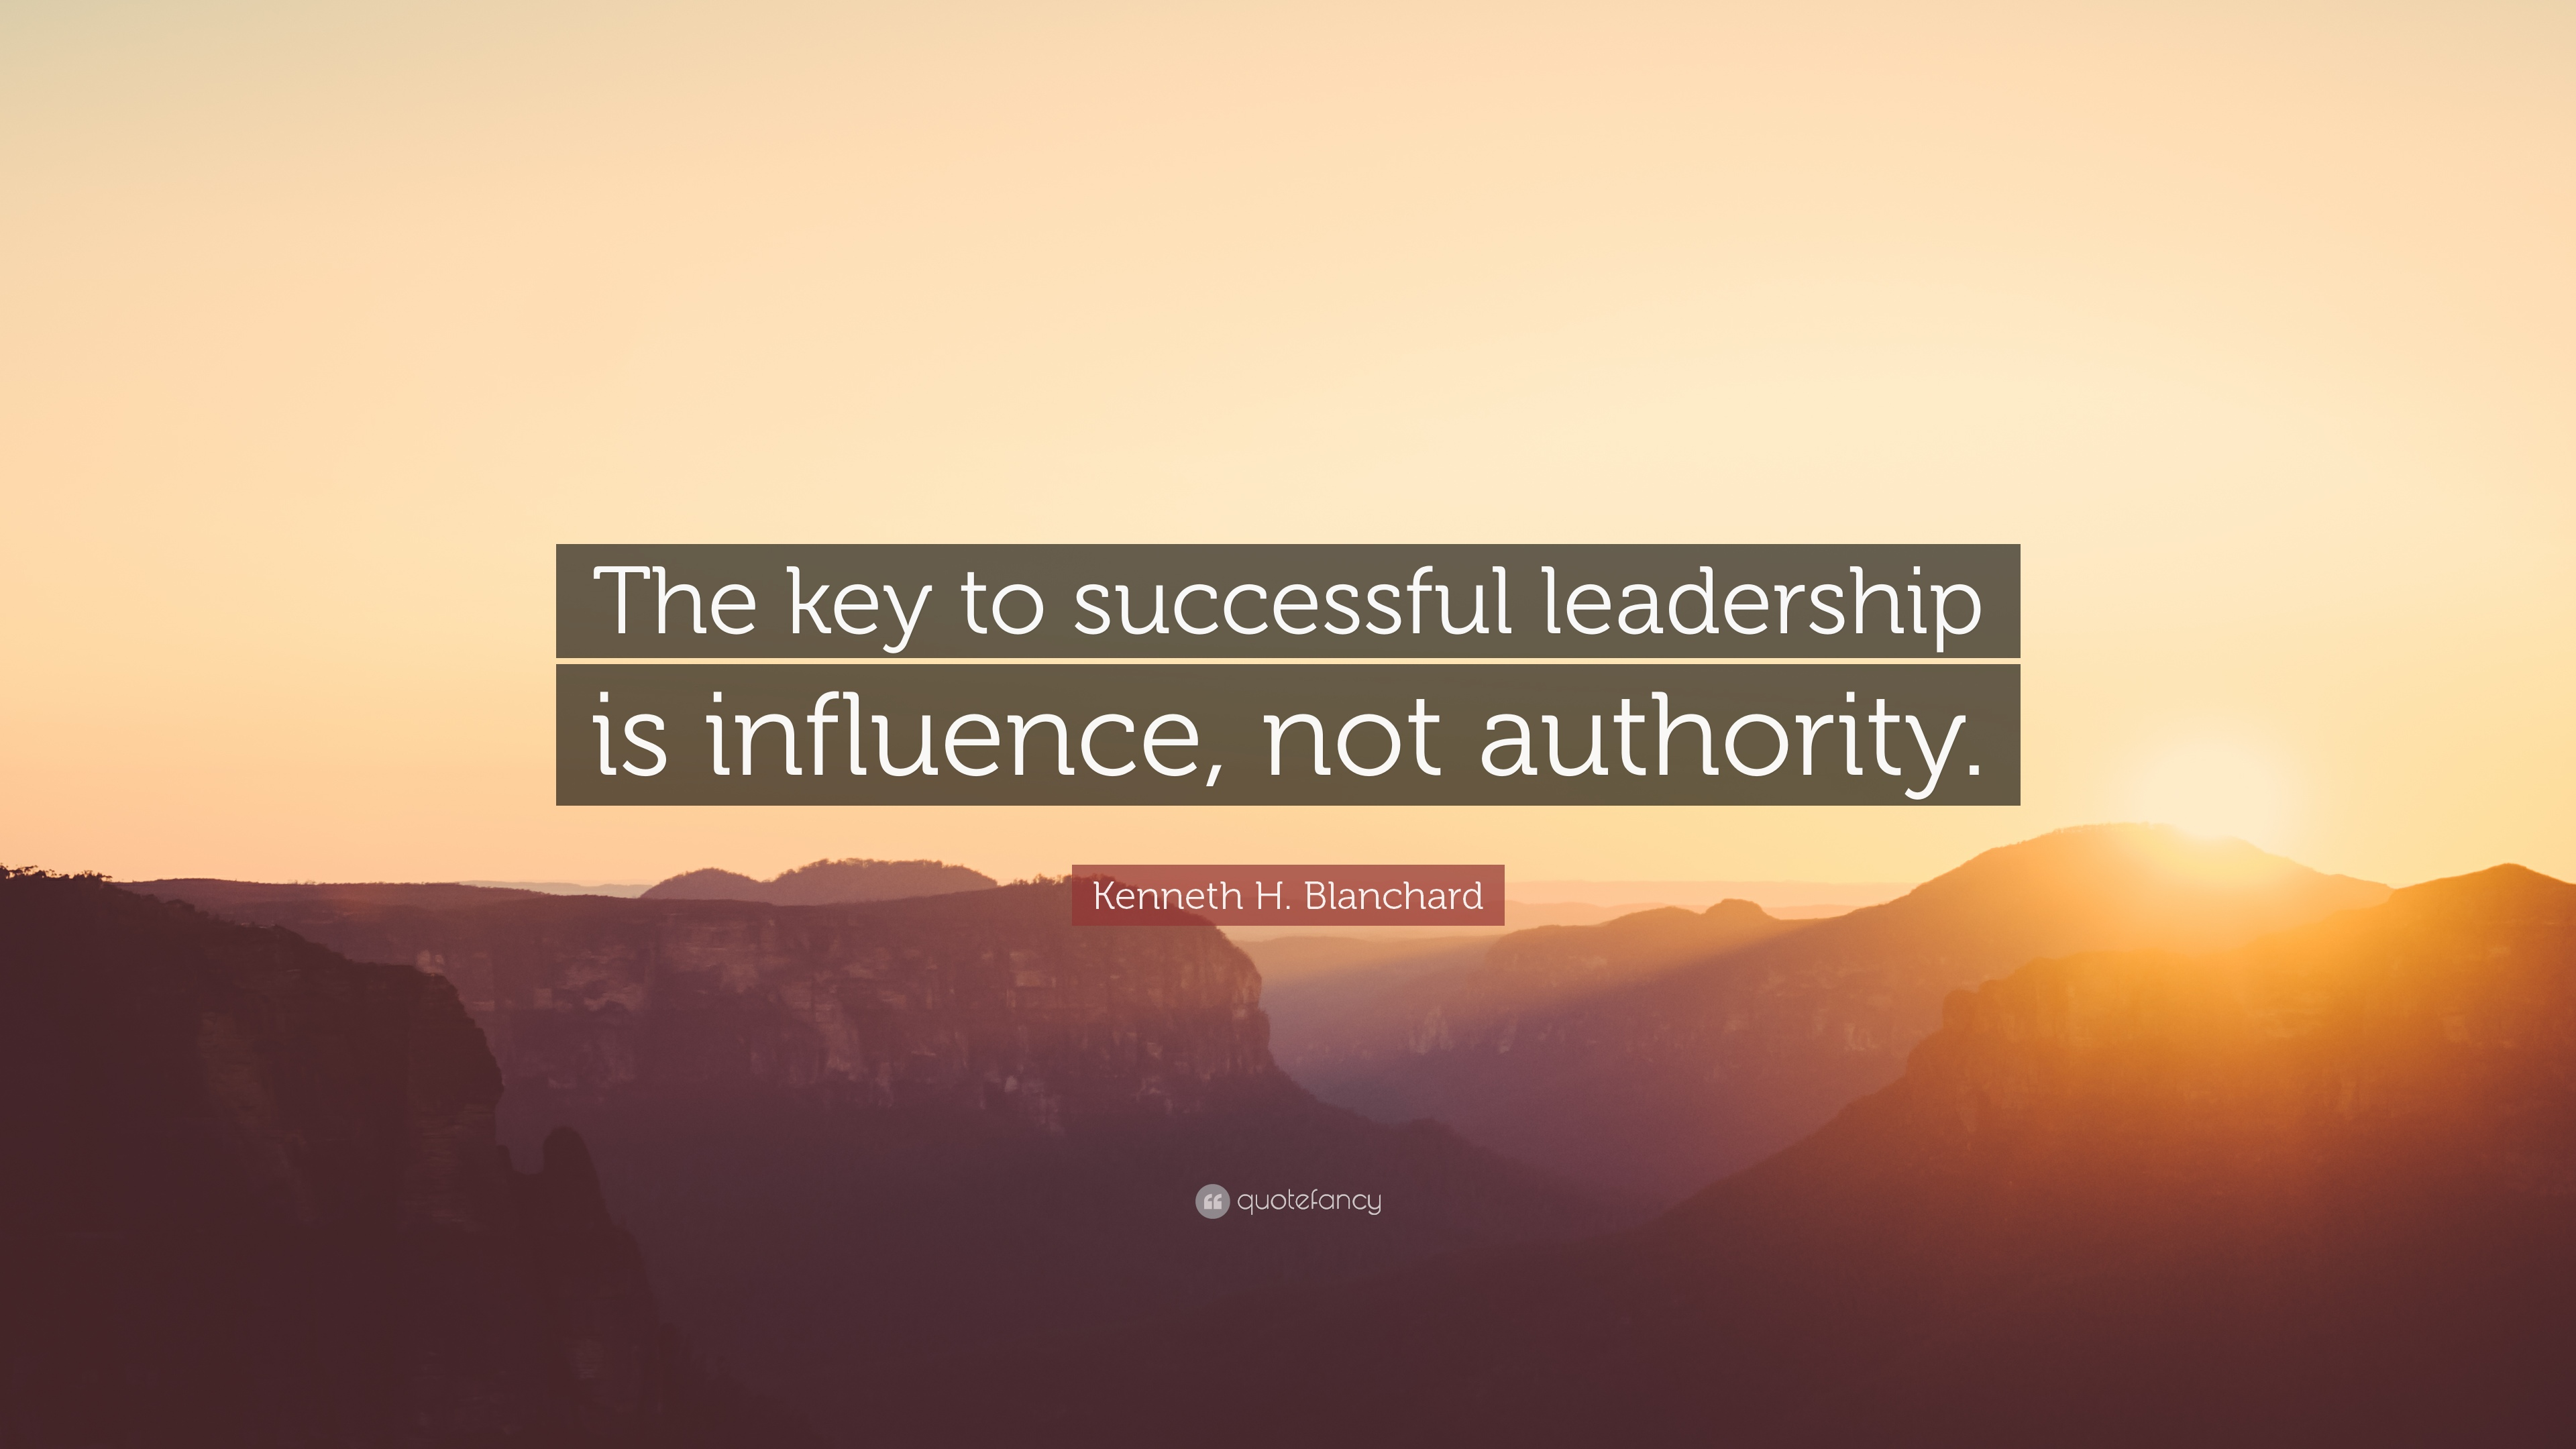 Leadership quotes 100 wallpapers quotefancy for Window is not defined